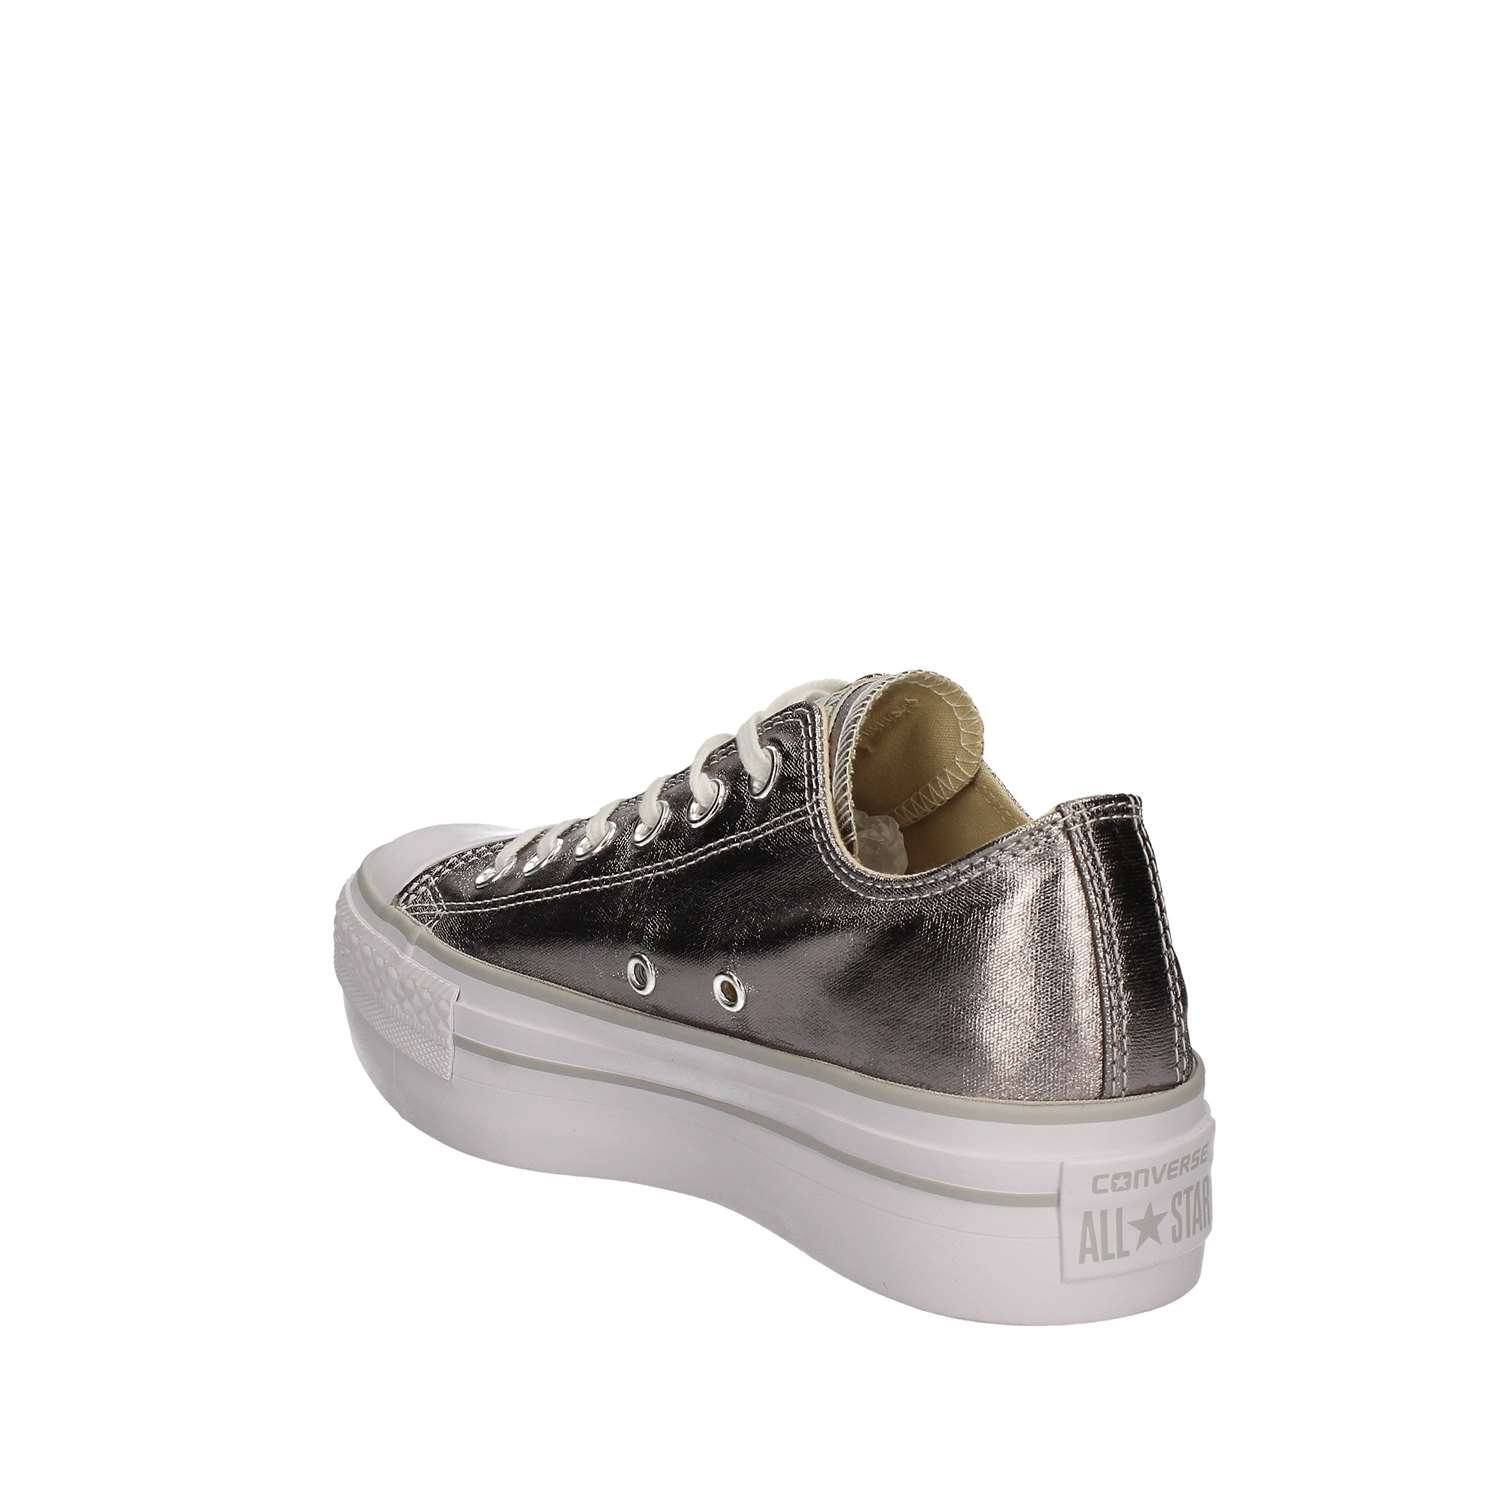 6203f6a06db Converse 556787C Sneakers Women  Amazon.co.uk  Shoes   Bags